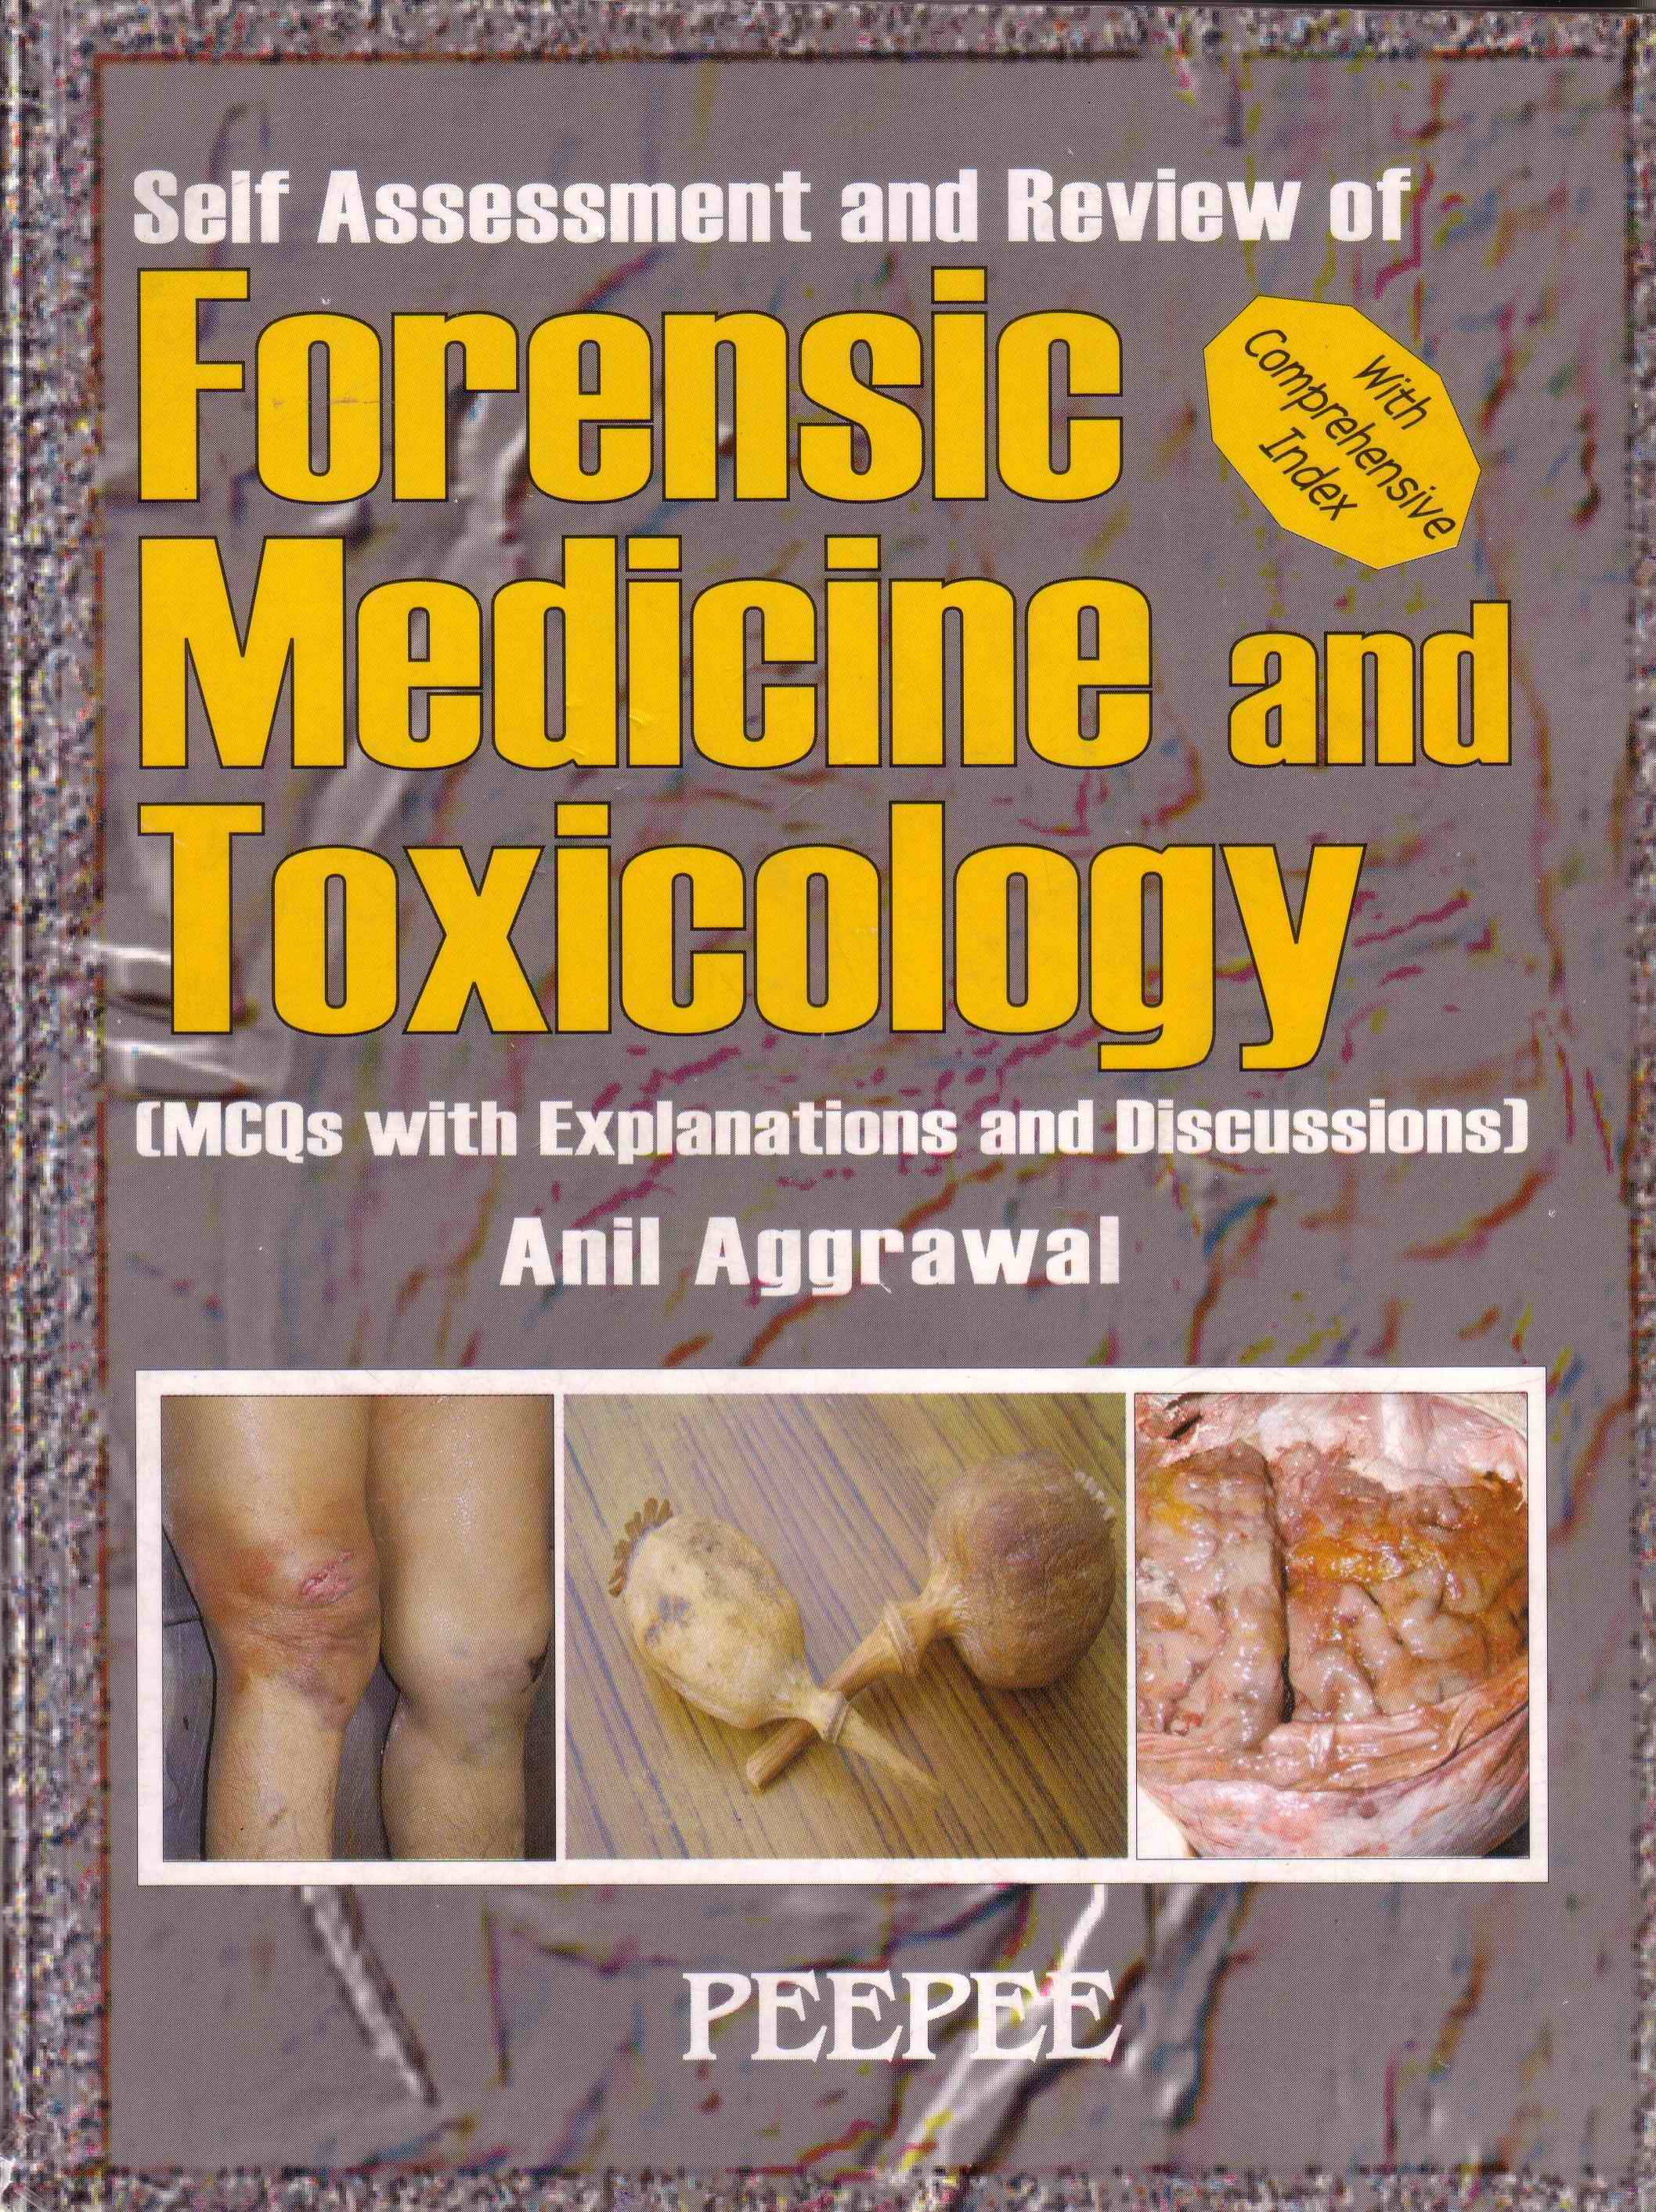 File Forensic Medicine And Toxicology Mcq Aggrawal 2006 Jpg Wikimedia Commons